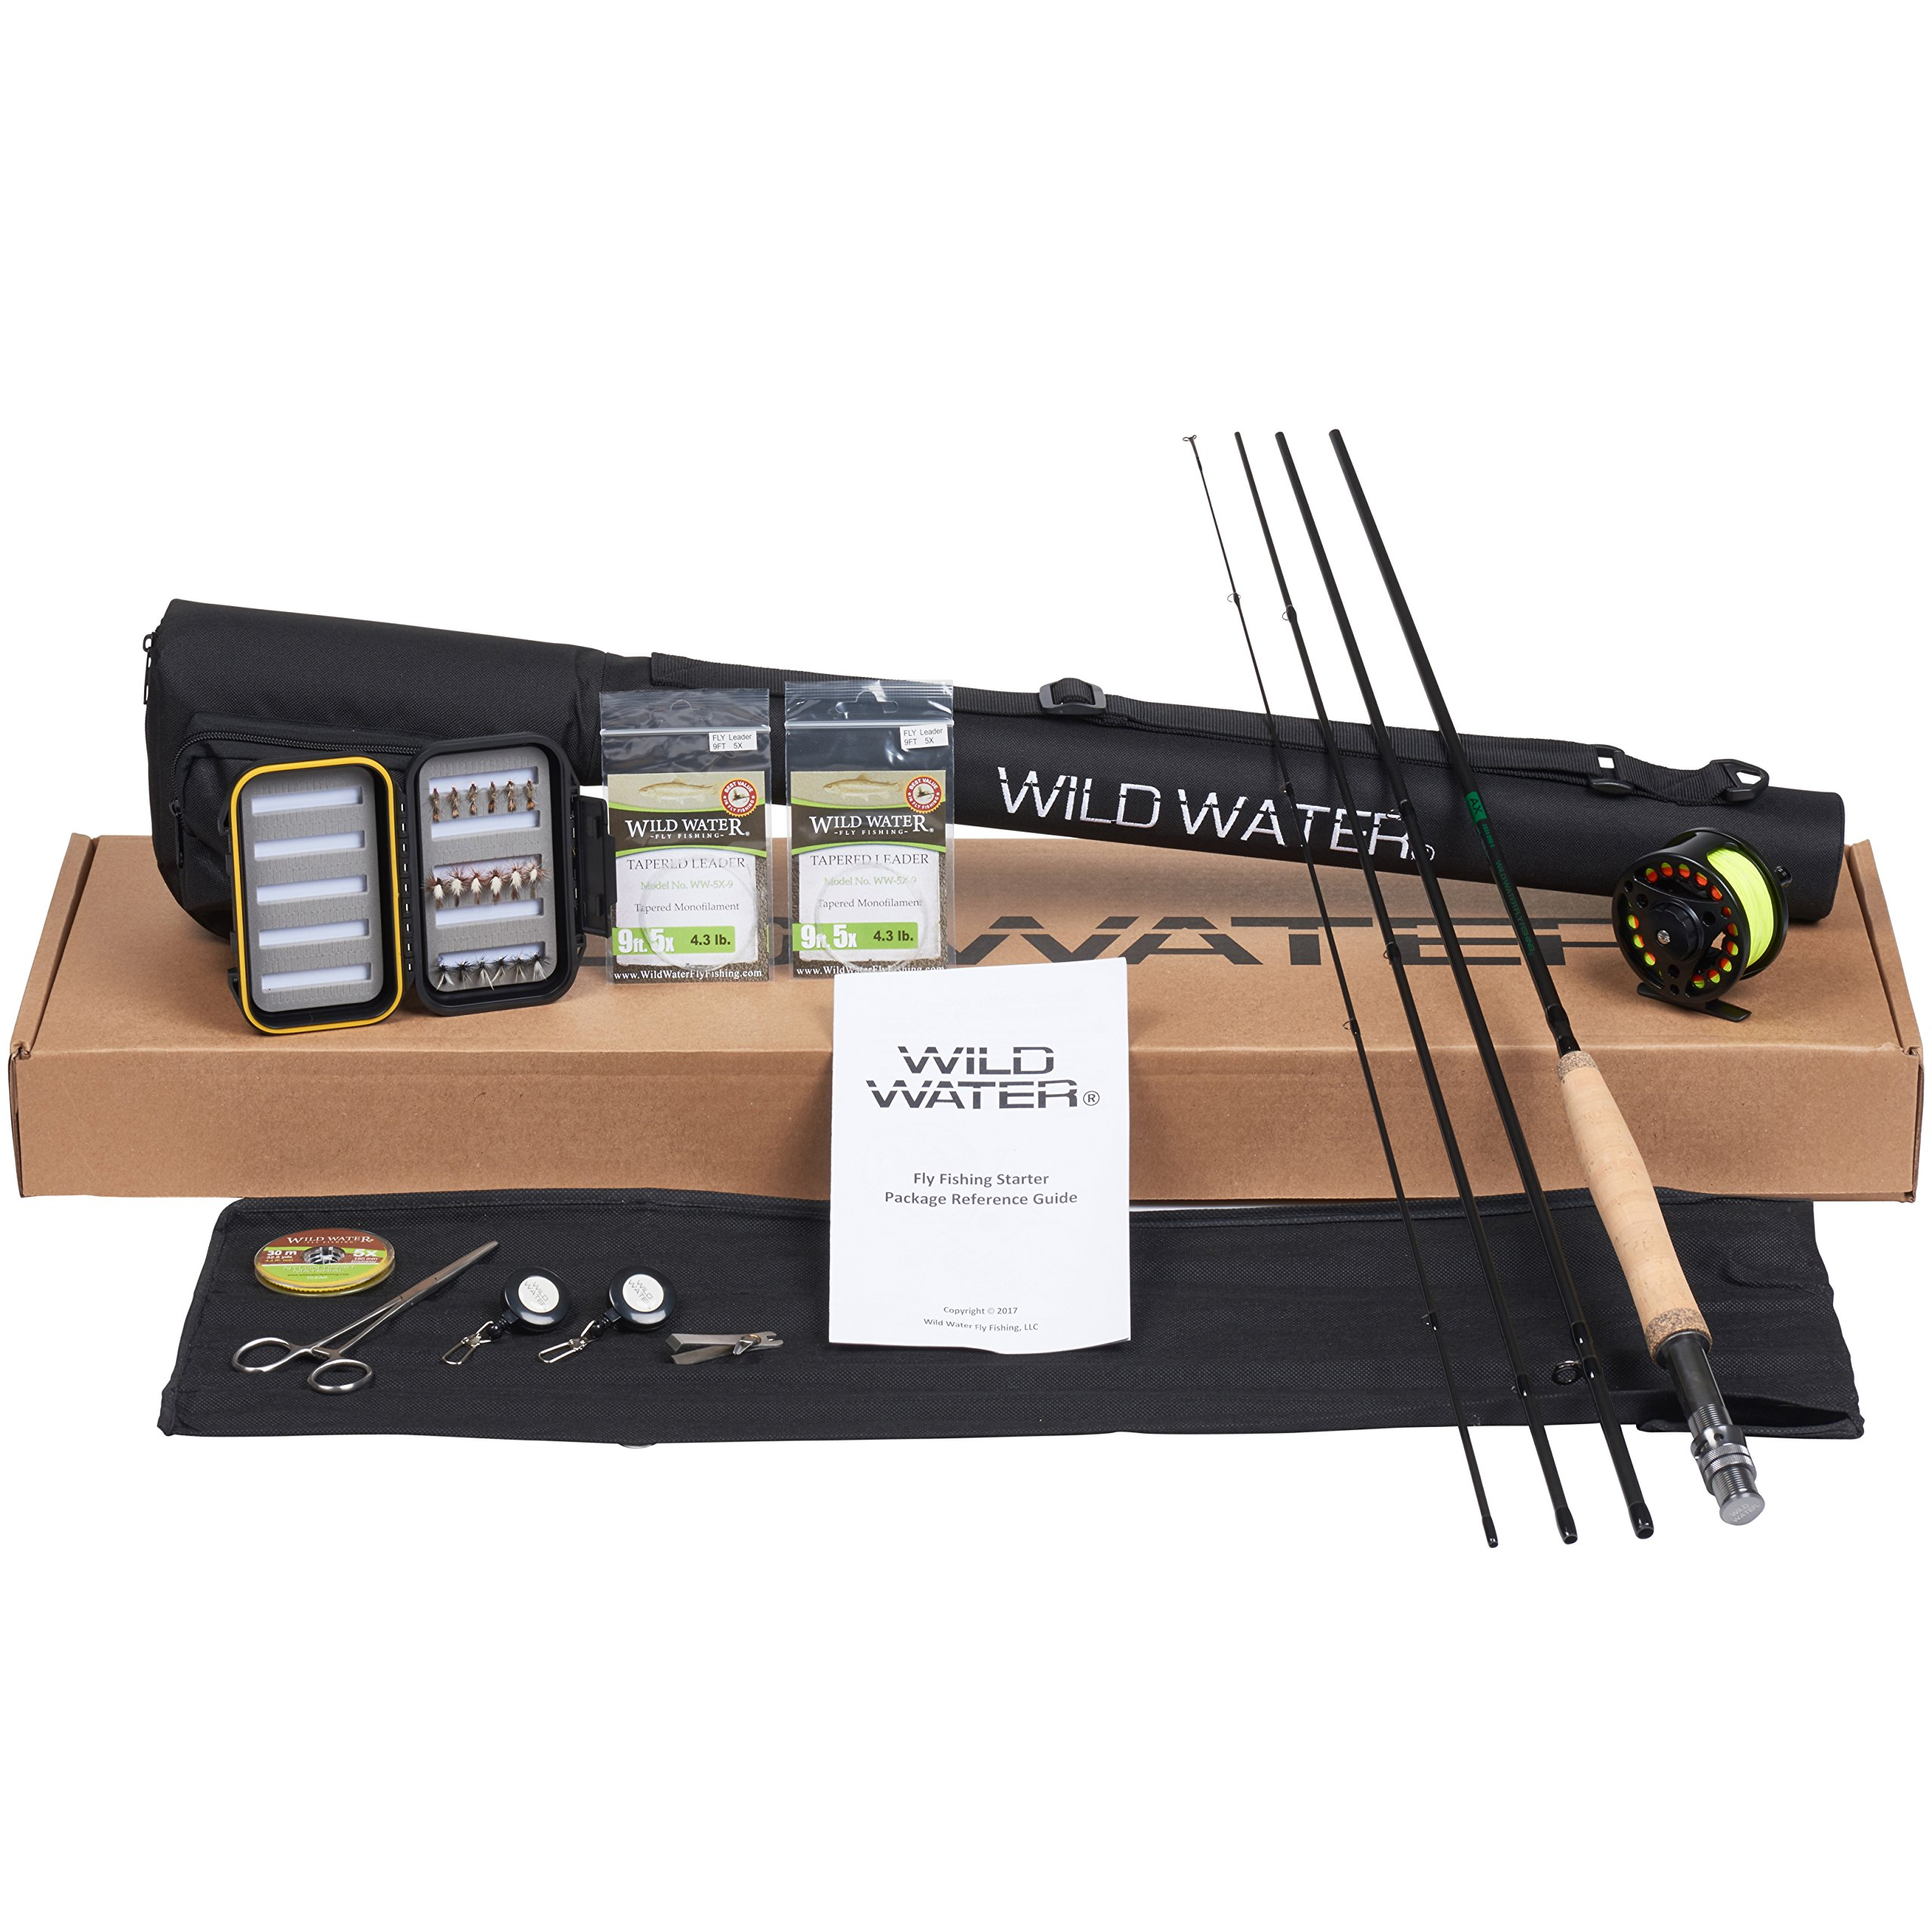 Wild Water Fly Fishing Deluxe Rod and Reel Combo 4 Piece Fly Rod 3/4 9' Complete Starter Package by Wild Water